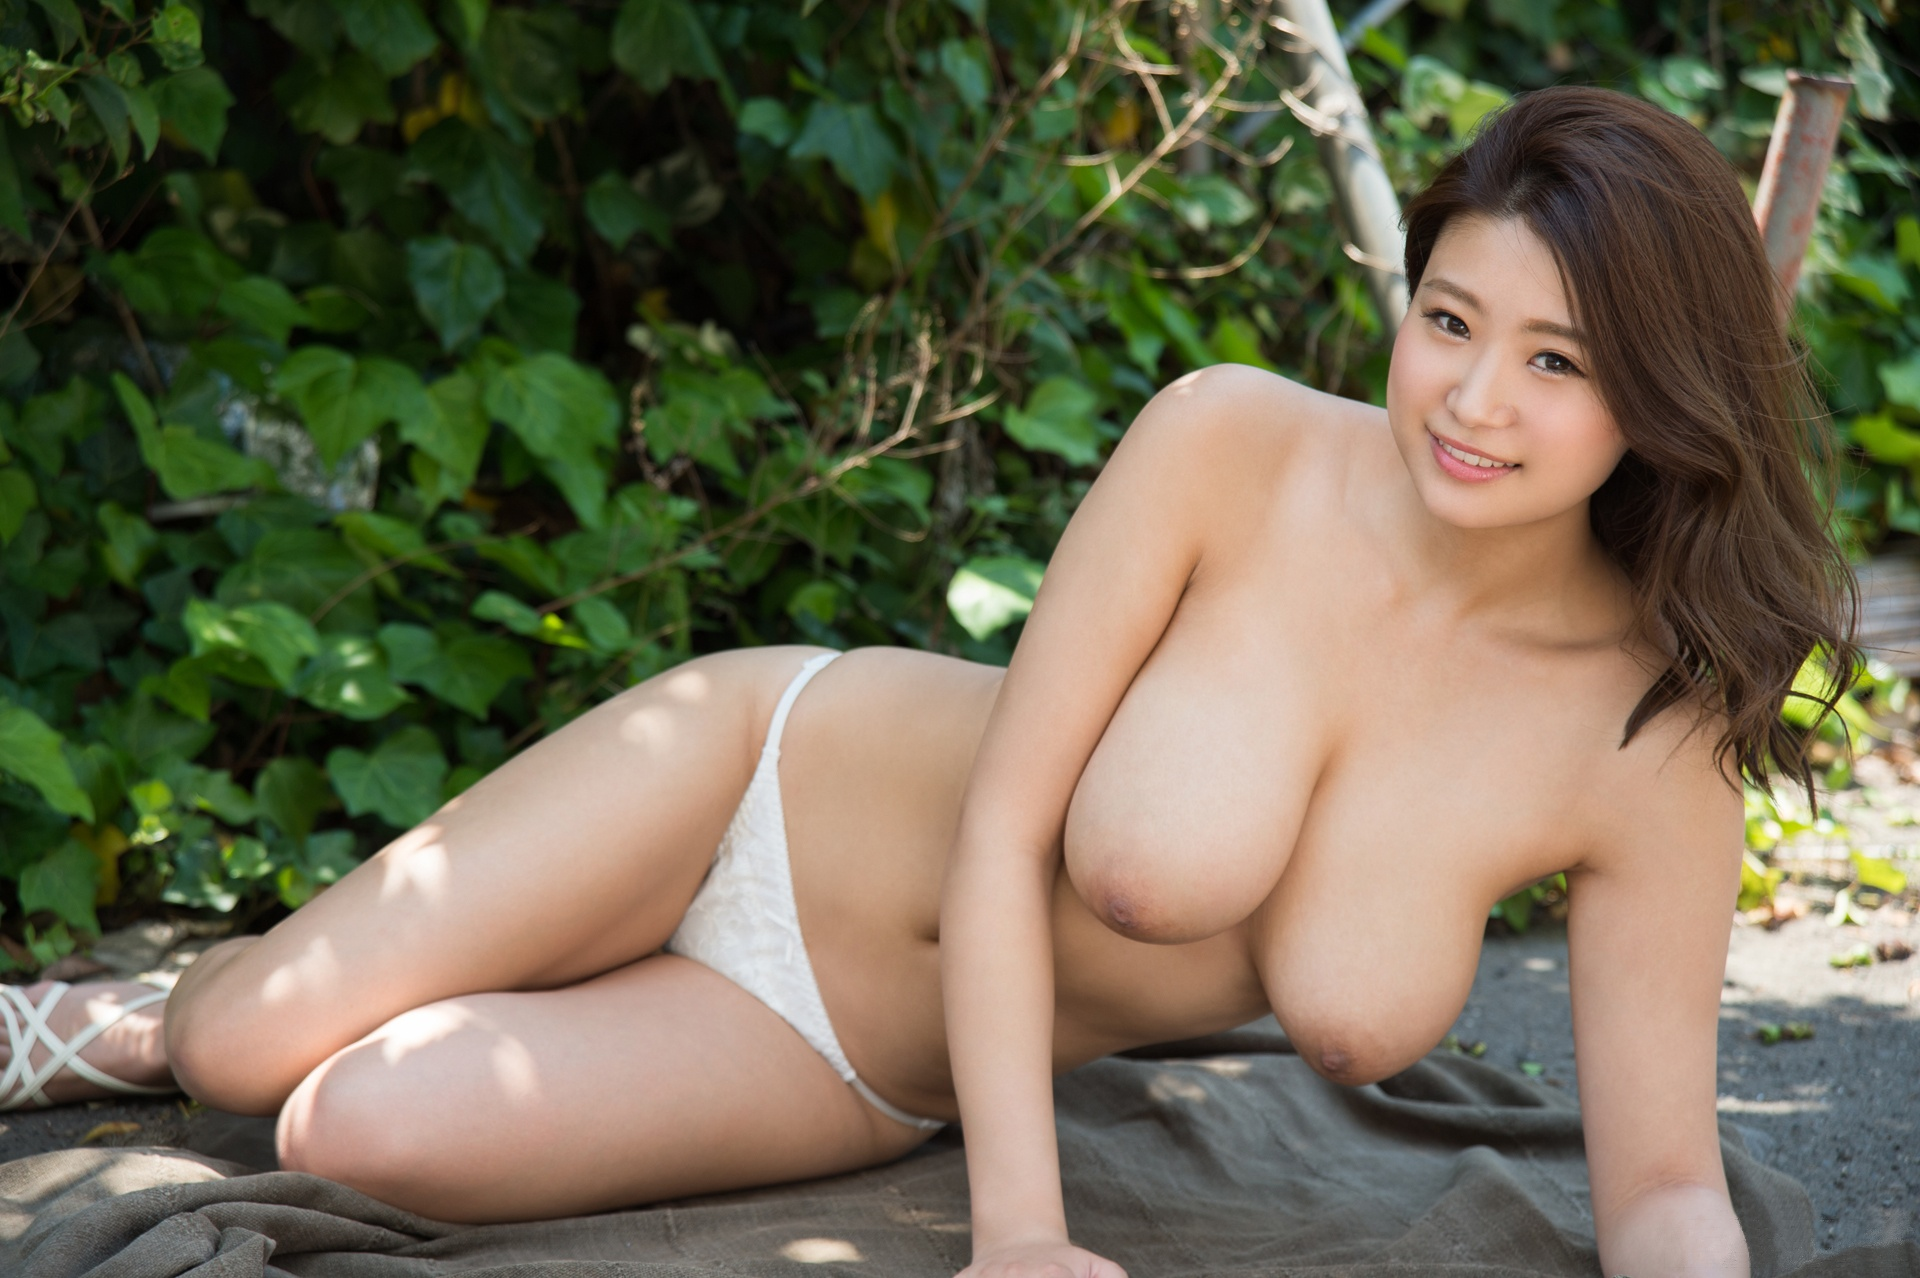 Asian girlfriend topless chatting with big tits